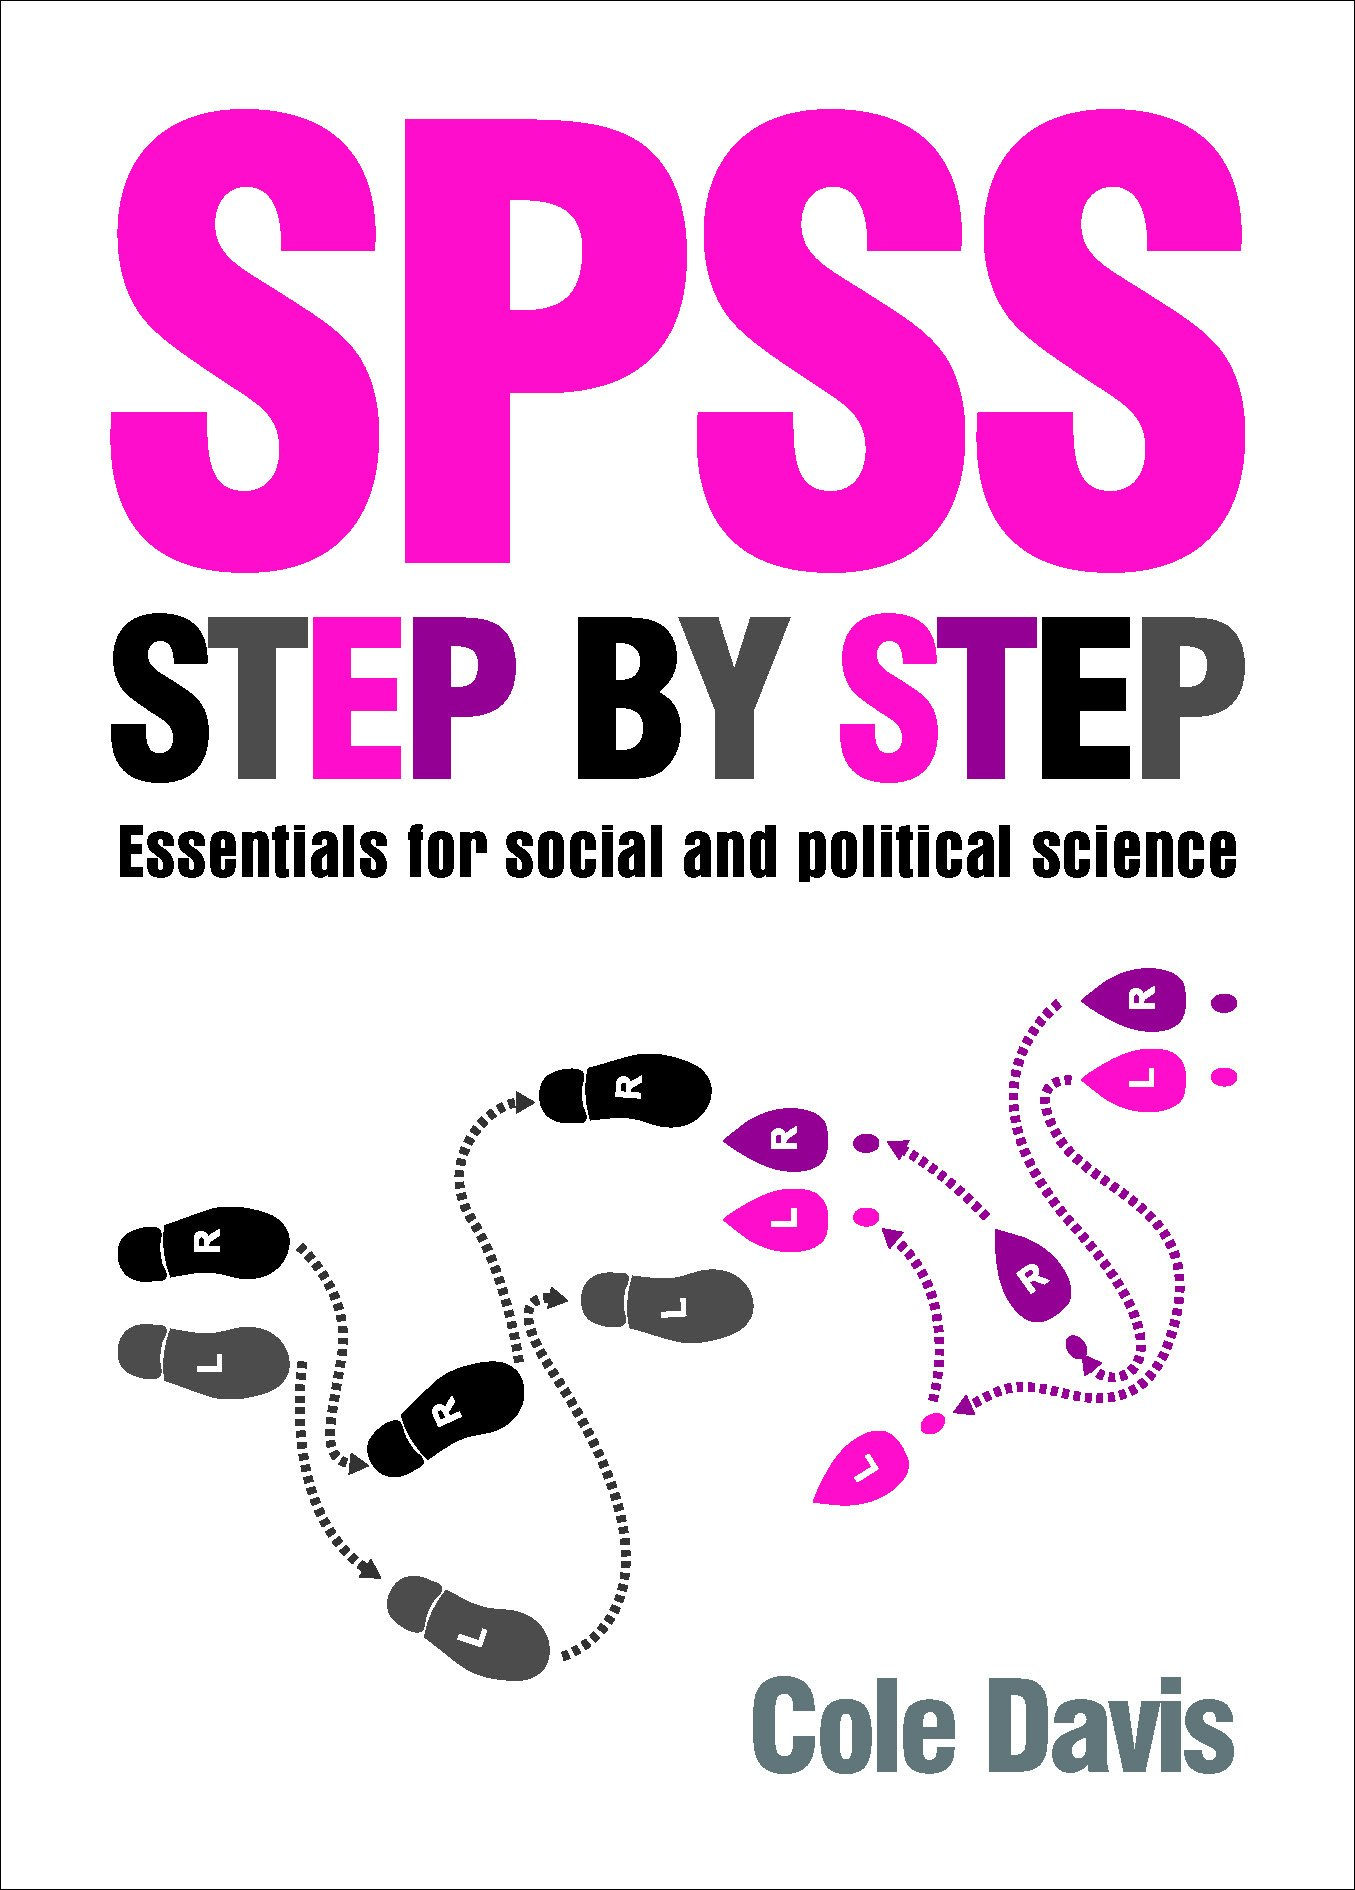 SPSS Step By Step: Essentials For Social And Political Science: Cole Davis:  9781447306276: Amazon.com: Books